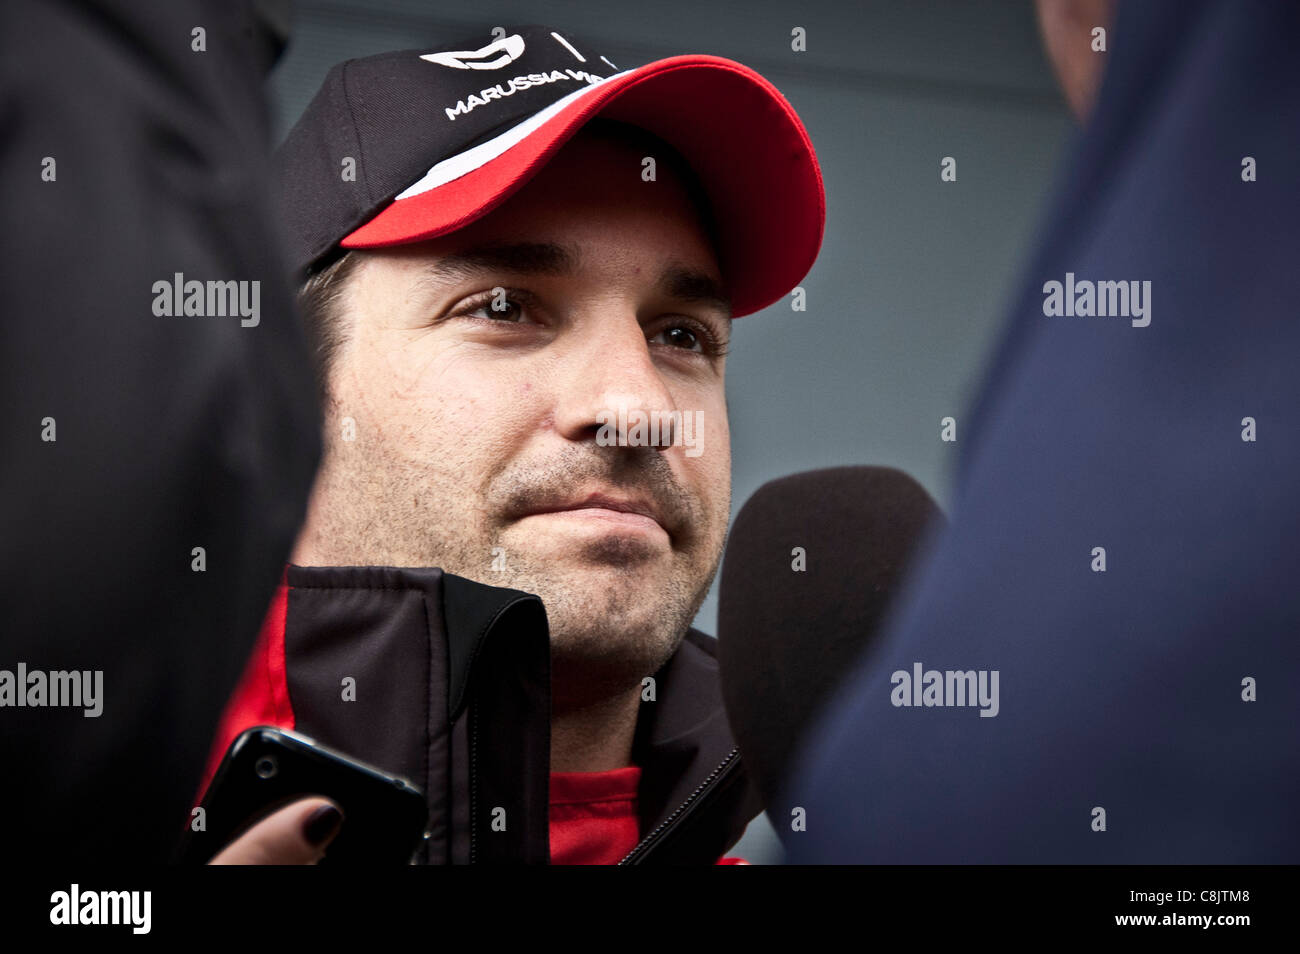 Formula 1 driver Timo Glock of the Virgin Racing team, silverstone, 2011 - Stock Image